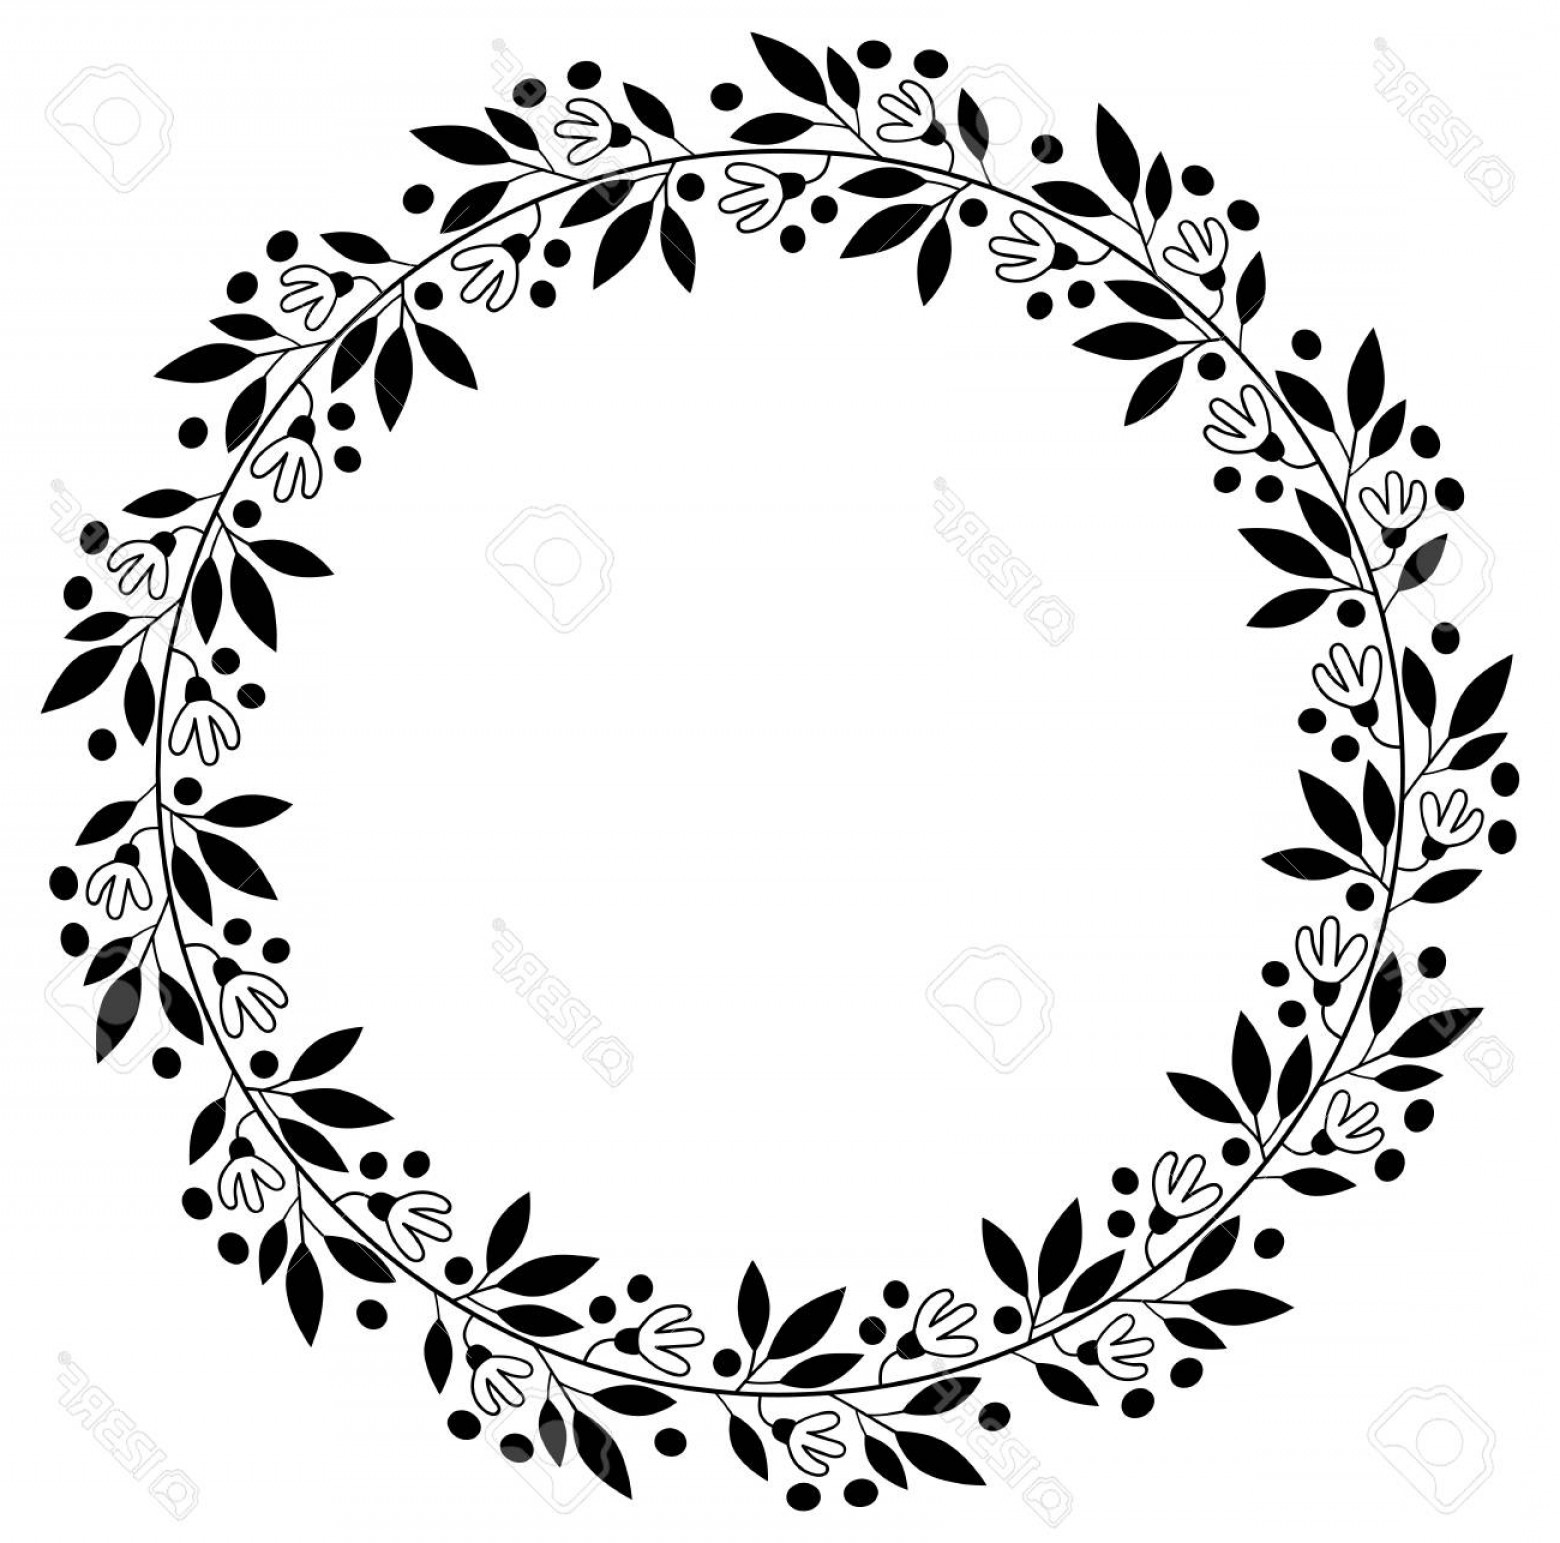 Vector Flower Wreaths In Black: Photostock Vector Black Floral Border For Wedding Invitations And Graphic Design Round Vector Flower Wreath